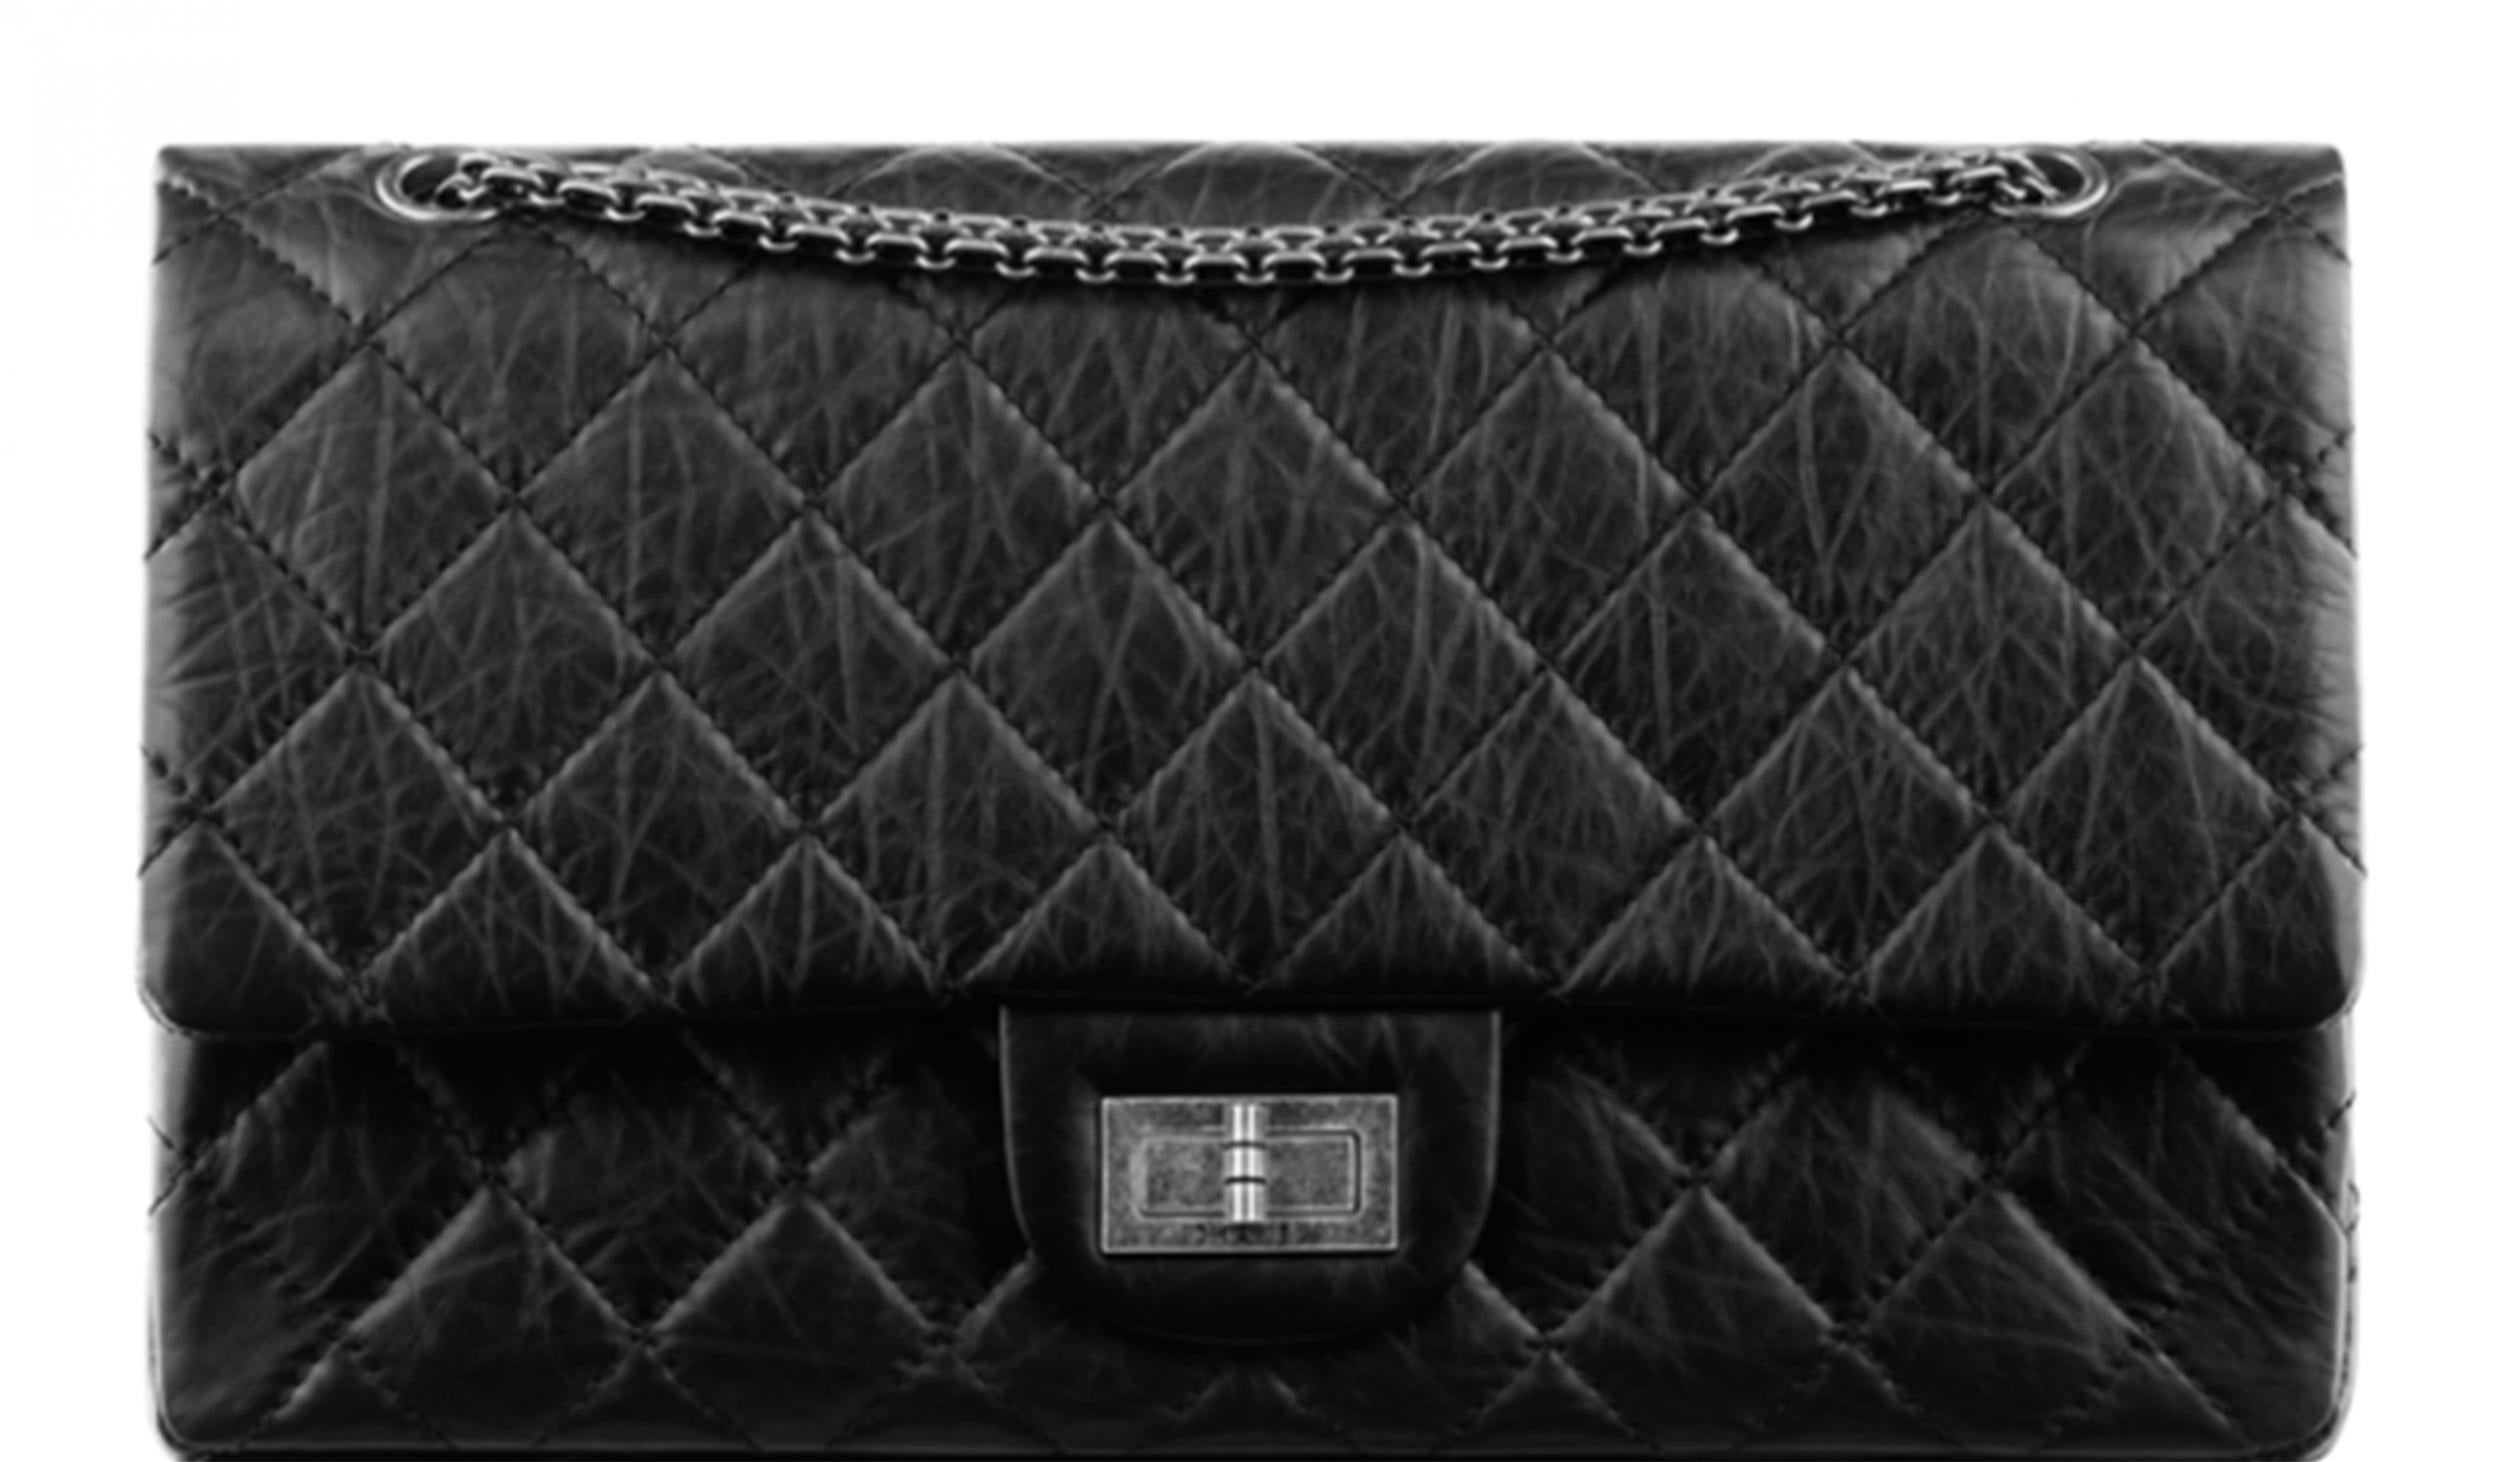 77df84de4739 The best investment designer handbags to buy